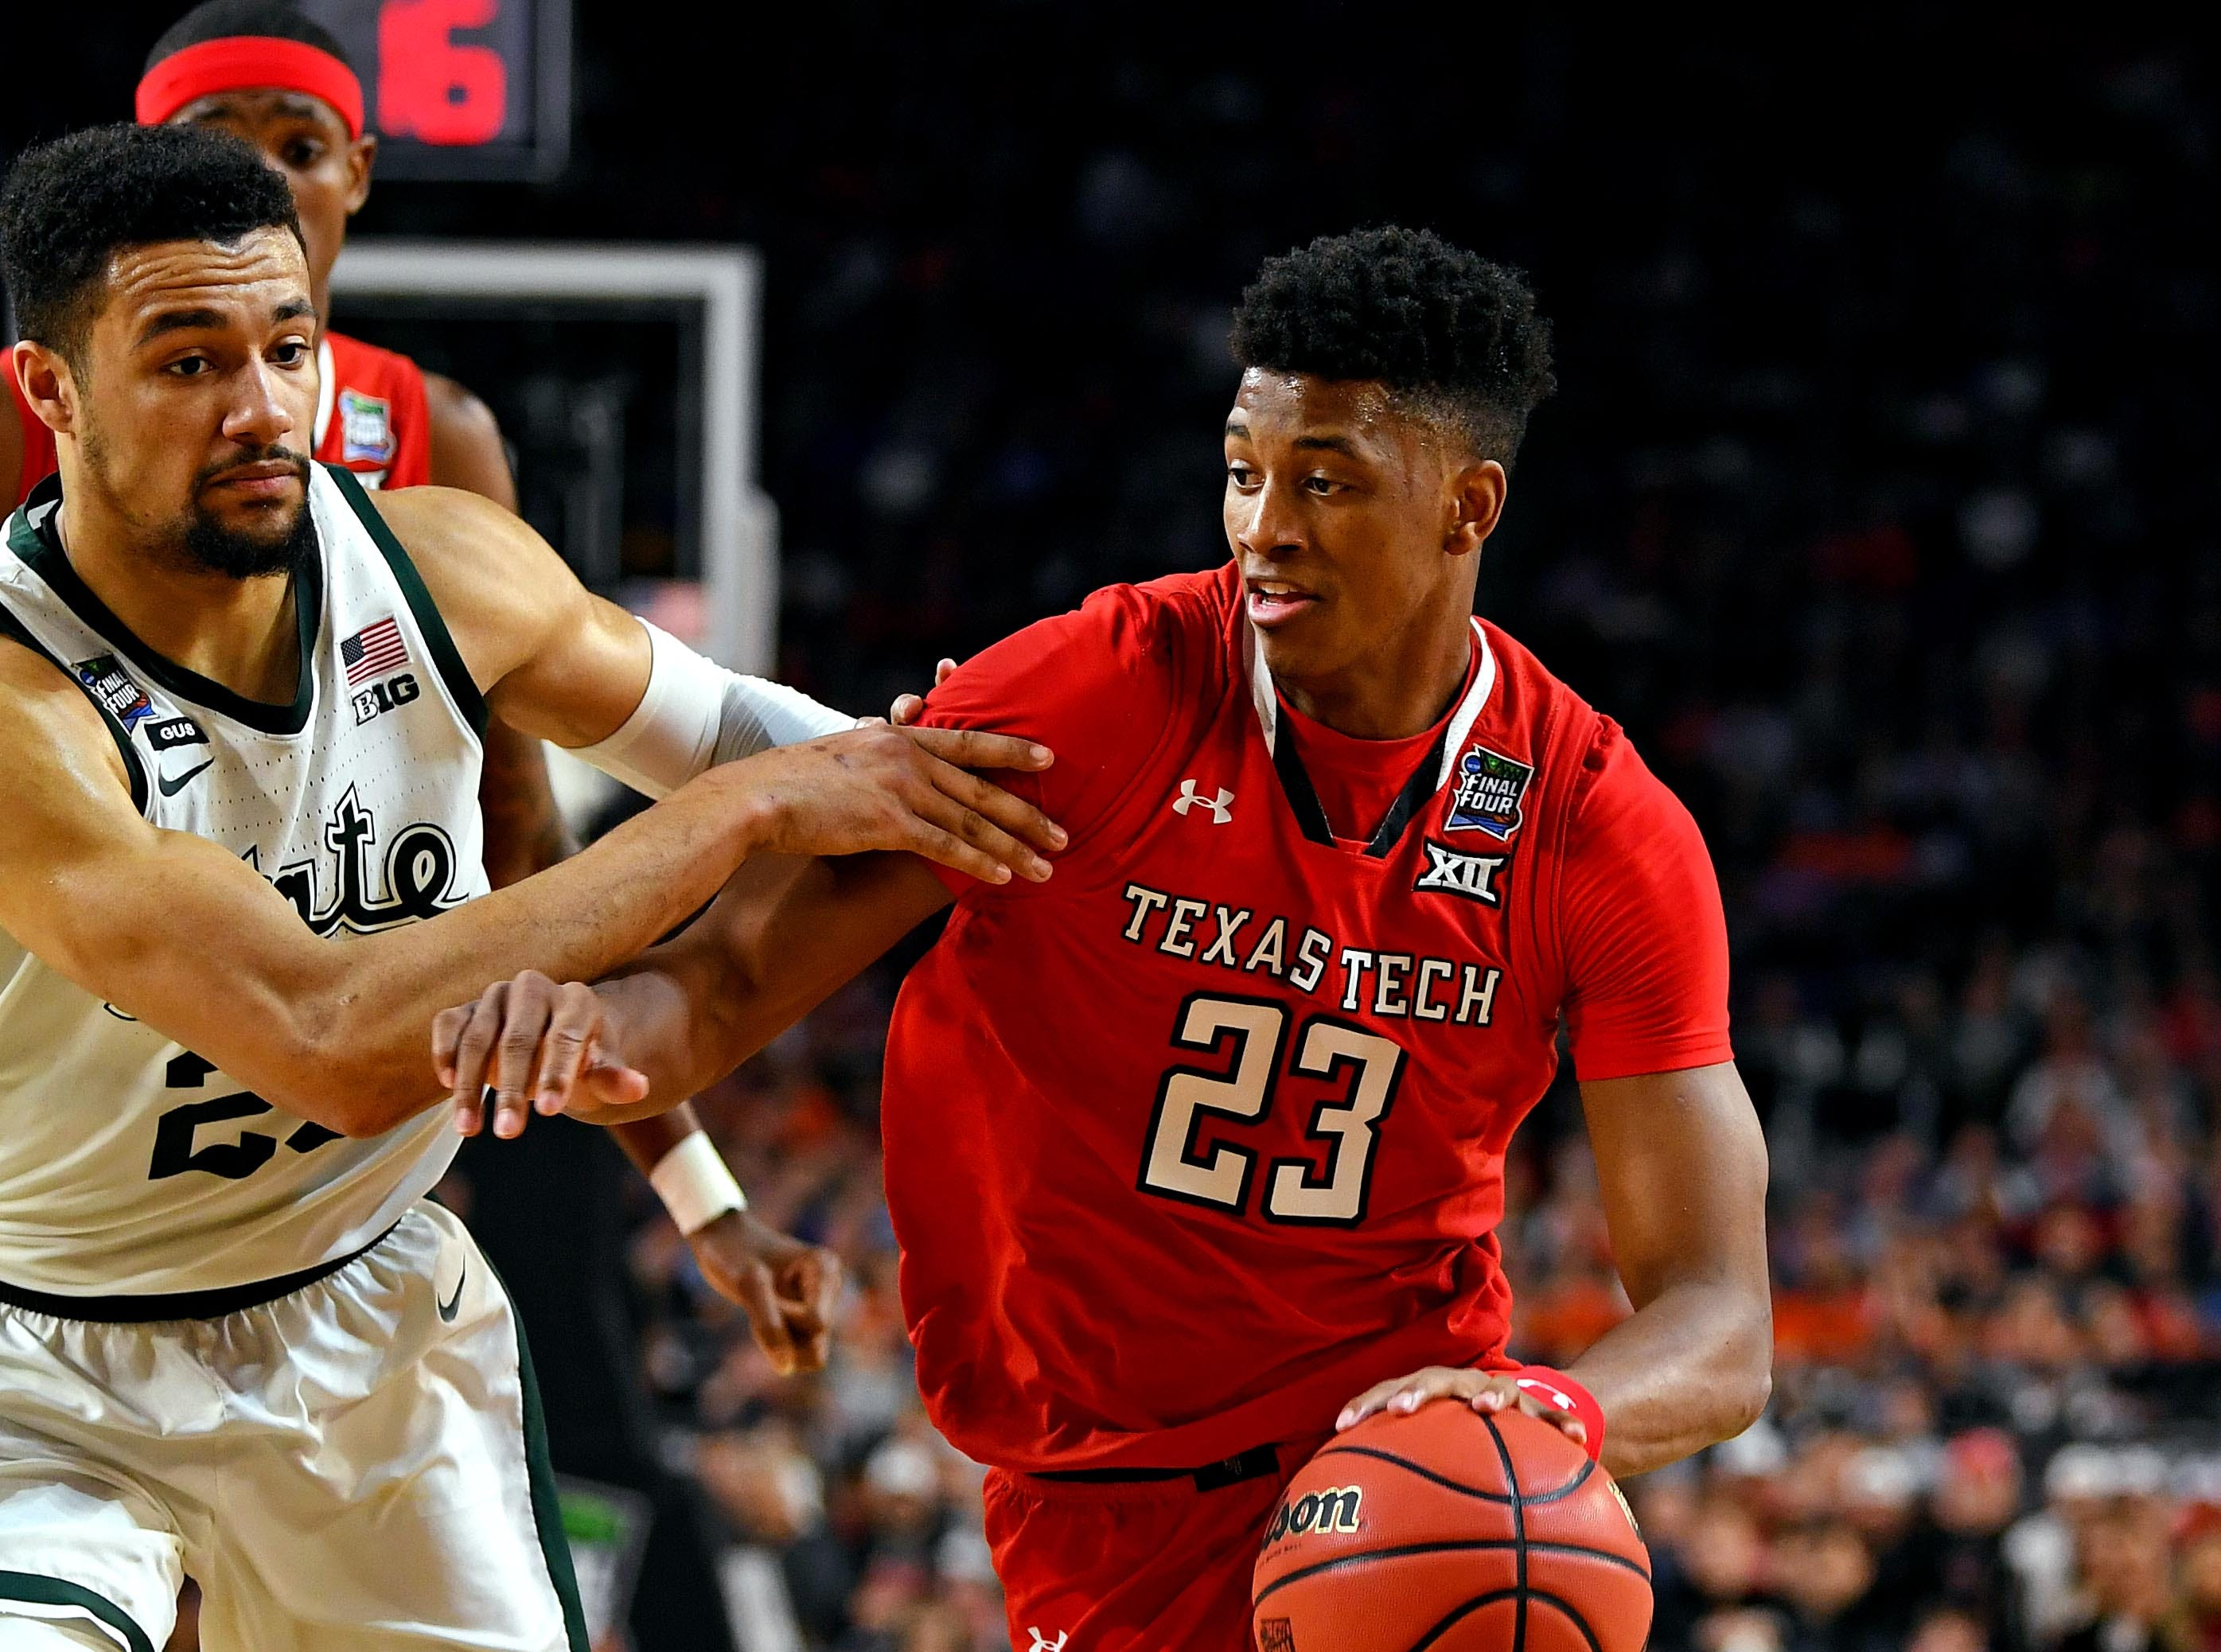 Apr 6, 2019; Minneapolis, MN, USA; Texas Tech Red Raiders guard Jarrett Culver (23) drives to the basket against Michigan State Spartans forward Kenny Goins (25) during the first half in the semifinals of the 2019 men's Final Four at US Bank Stadium. Mandatory Credit: Bob Donnan-USA TODAY Sports